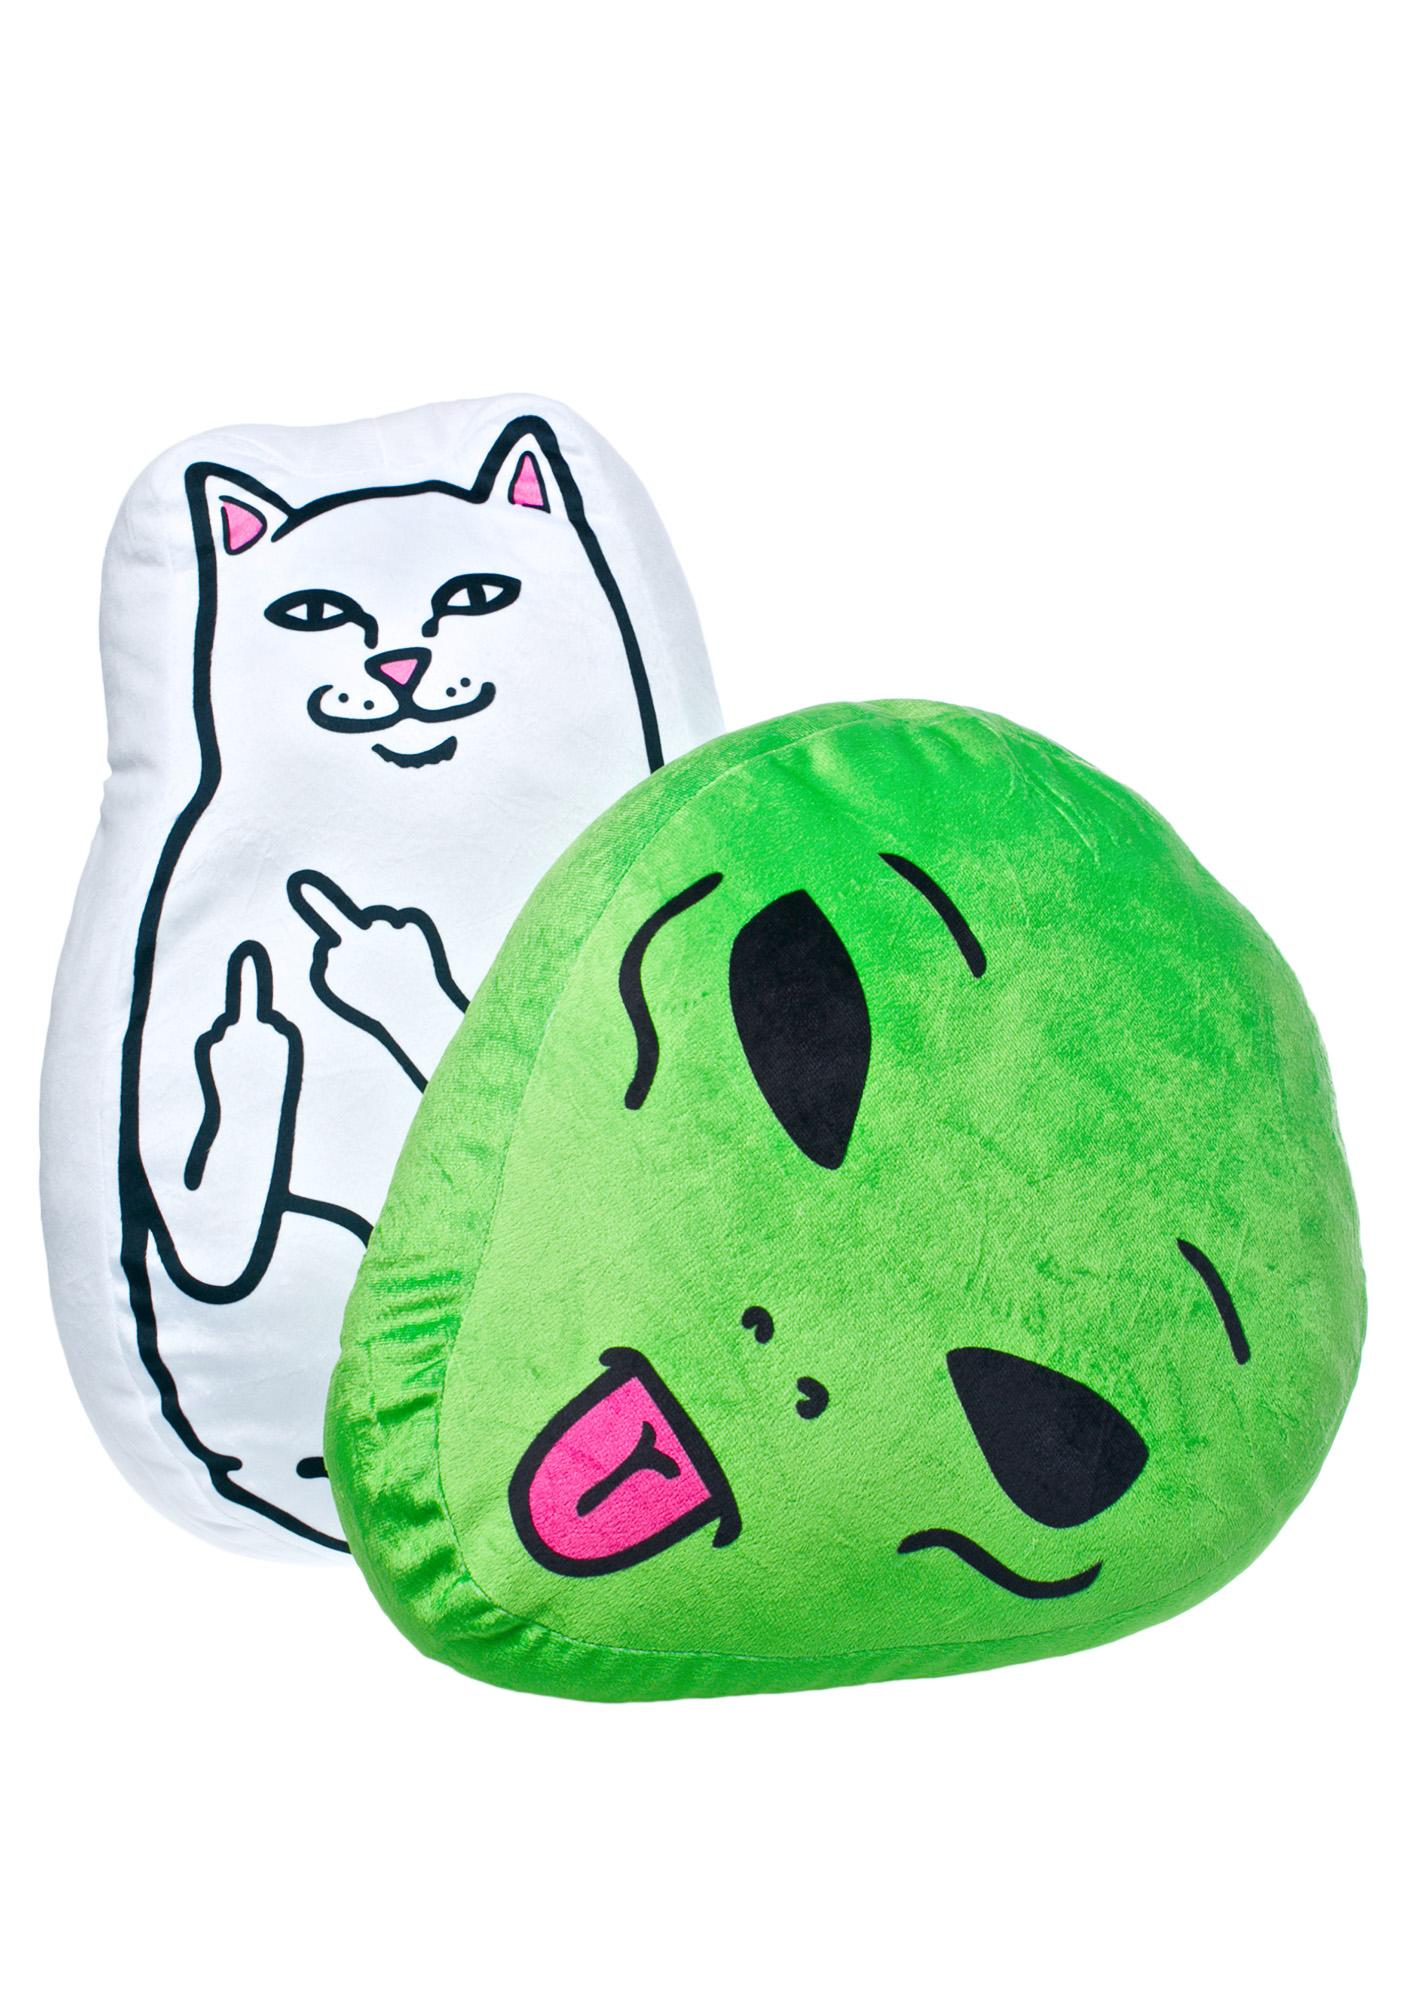 RIPNDIP We Out Here Pillow